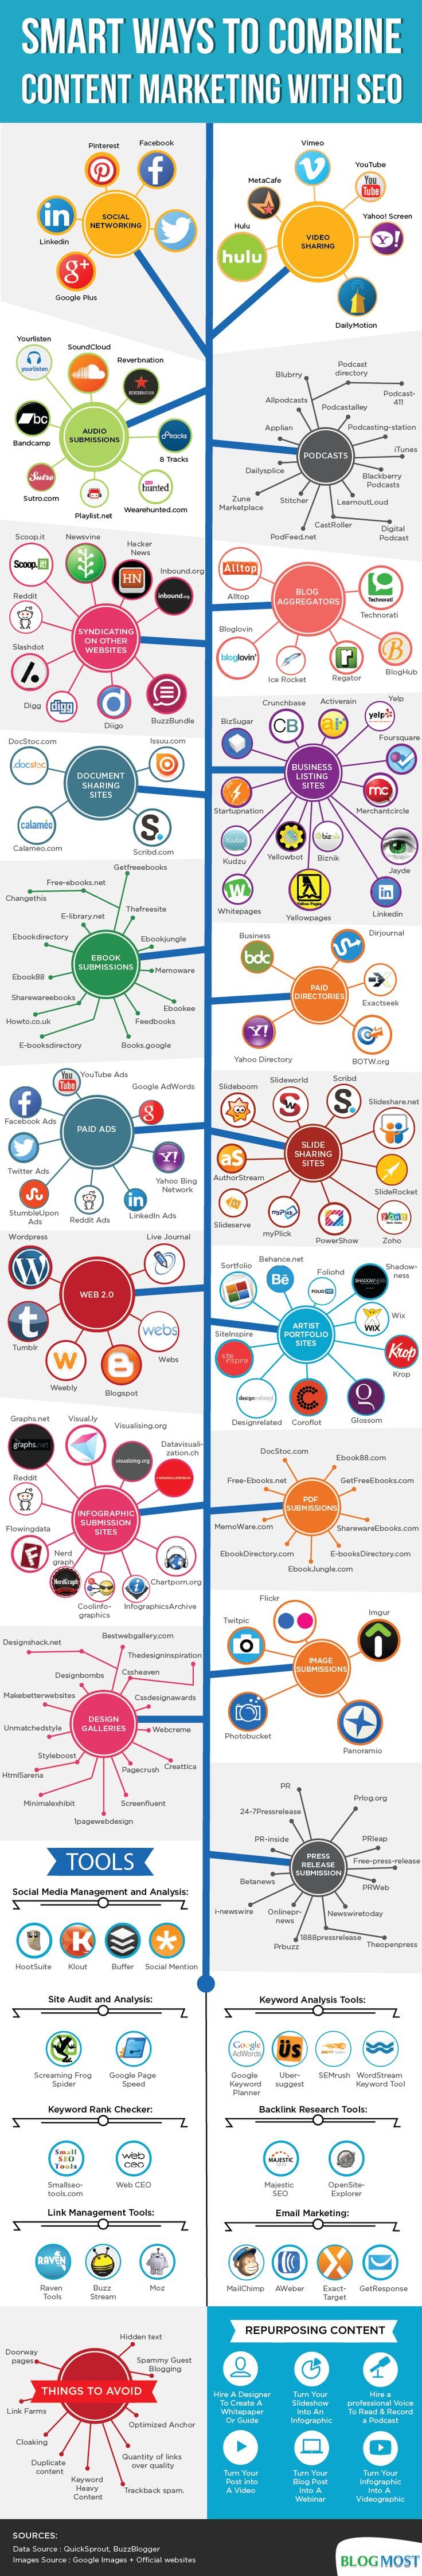 Smart Ways To Combine Content Marketing With #SEO #infographic #infografía